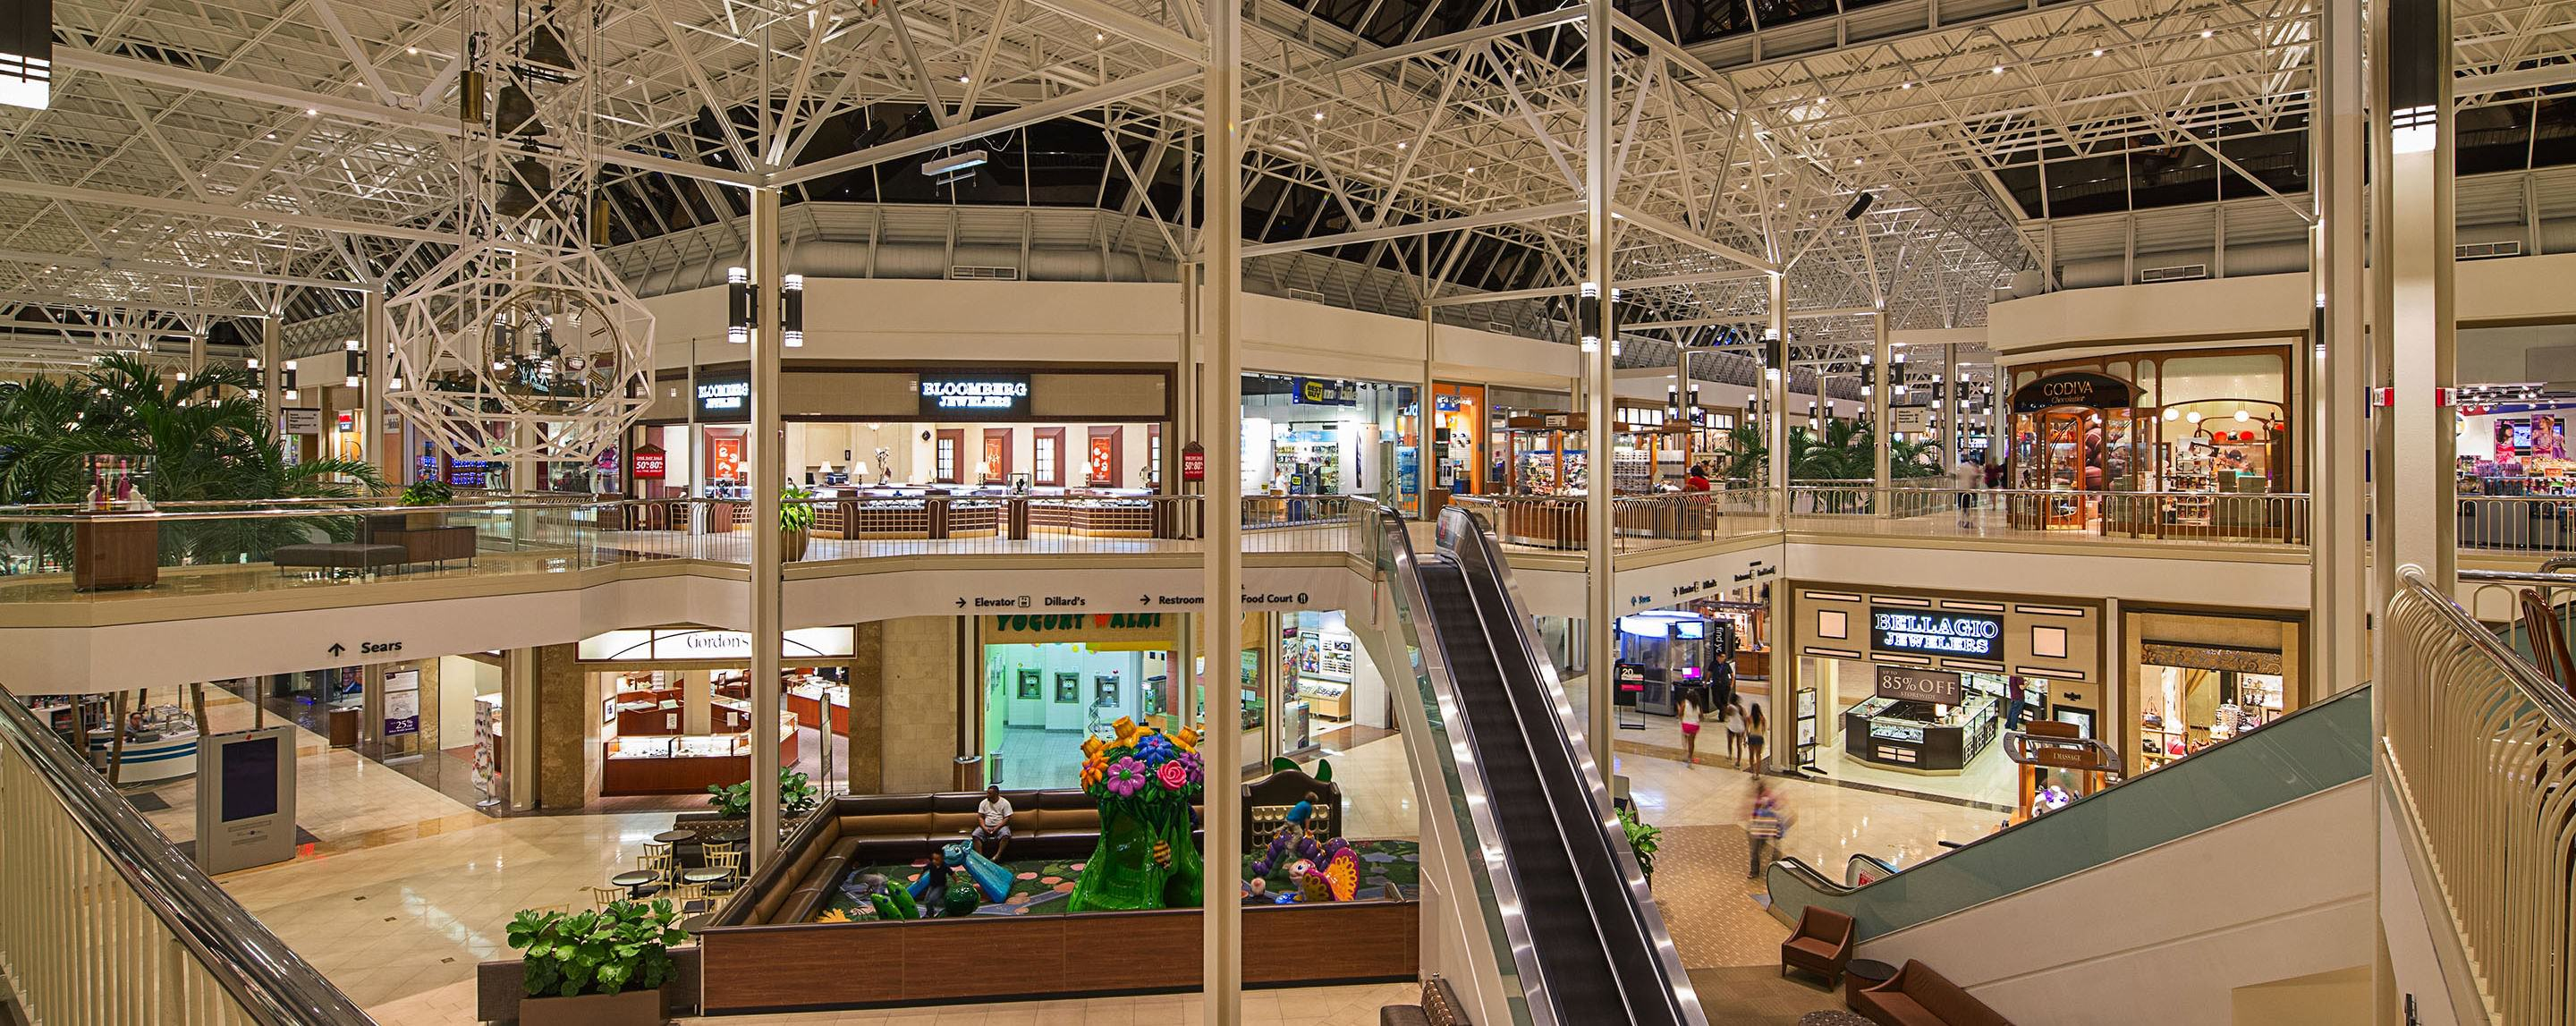 The indoor Hulen Mall atrium is lit up at night, lined with store fronts and has a play area for families on the lowest level.